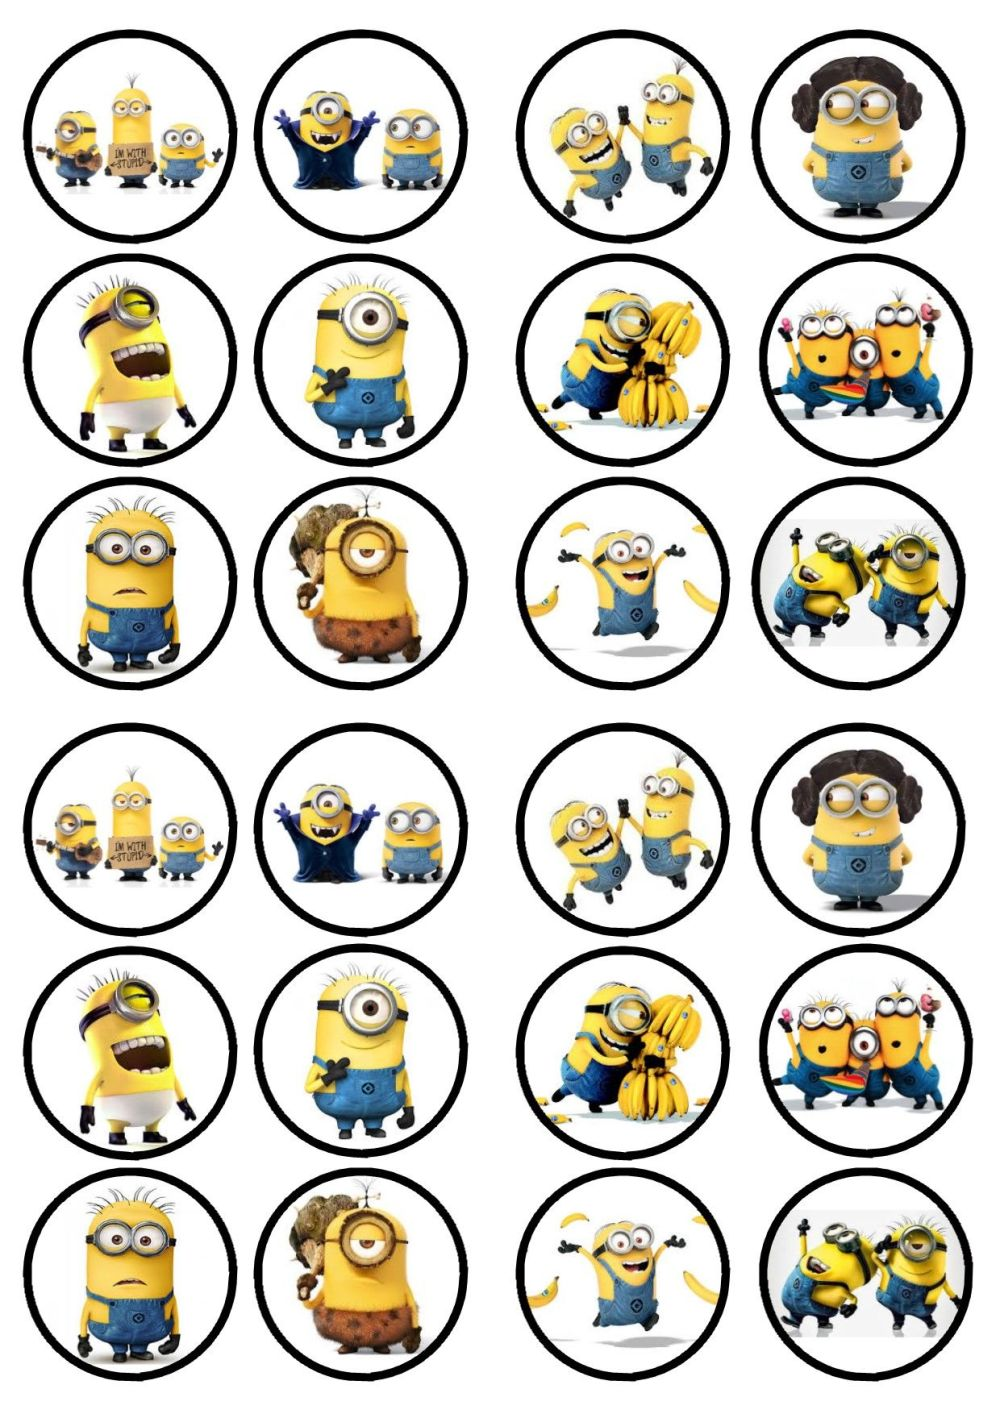 new-minions-movie-precut-edible-premium-wafer-paper-cupcake-toppers-1563-p